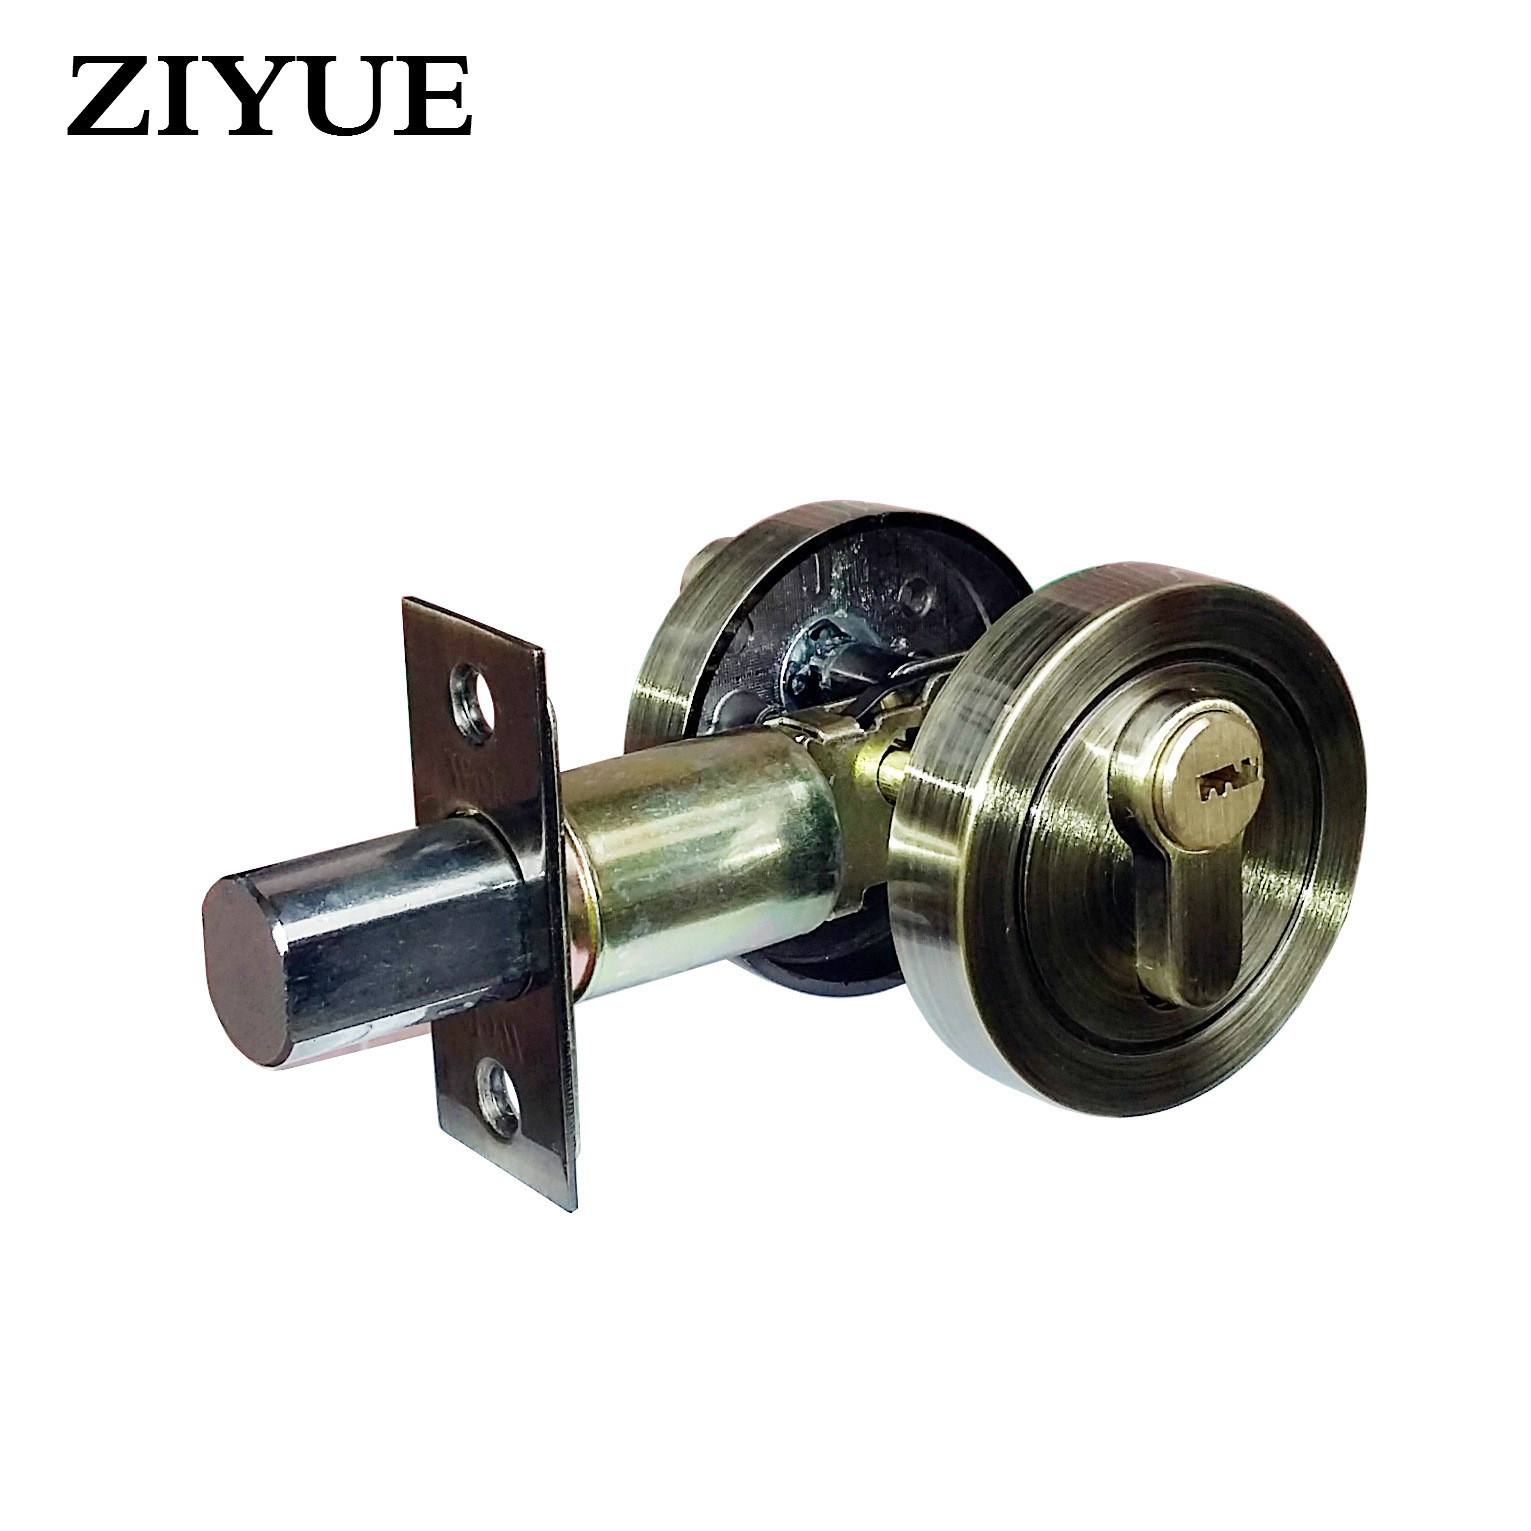 все цены на Free Shipping Zinc Alloy Home house Room Locking Single Head Door Locking Auxiliary Lock онлайн